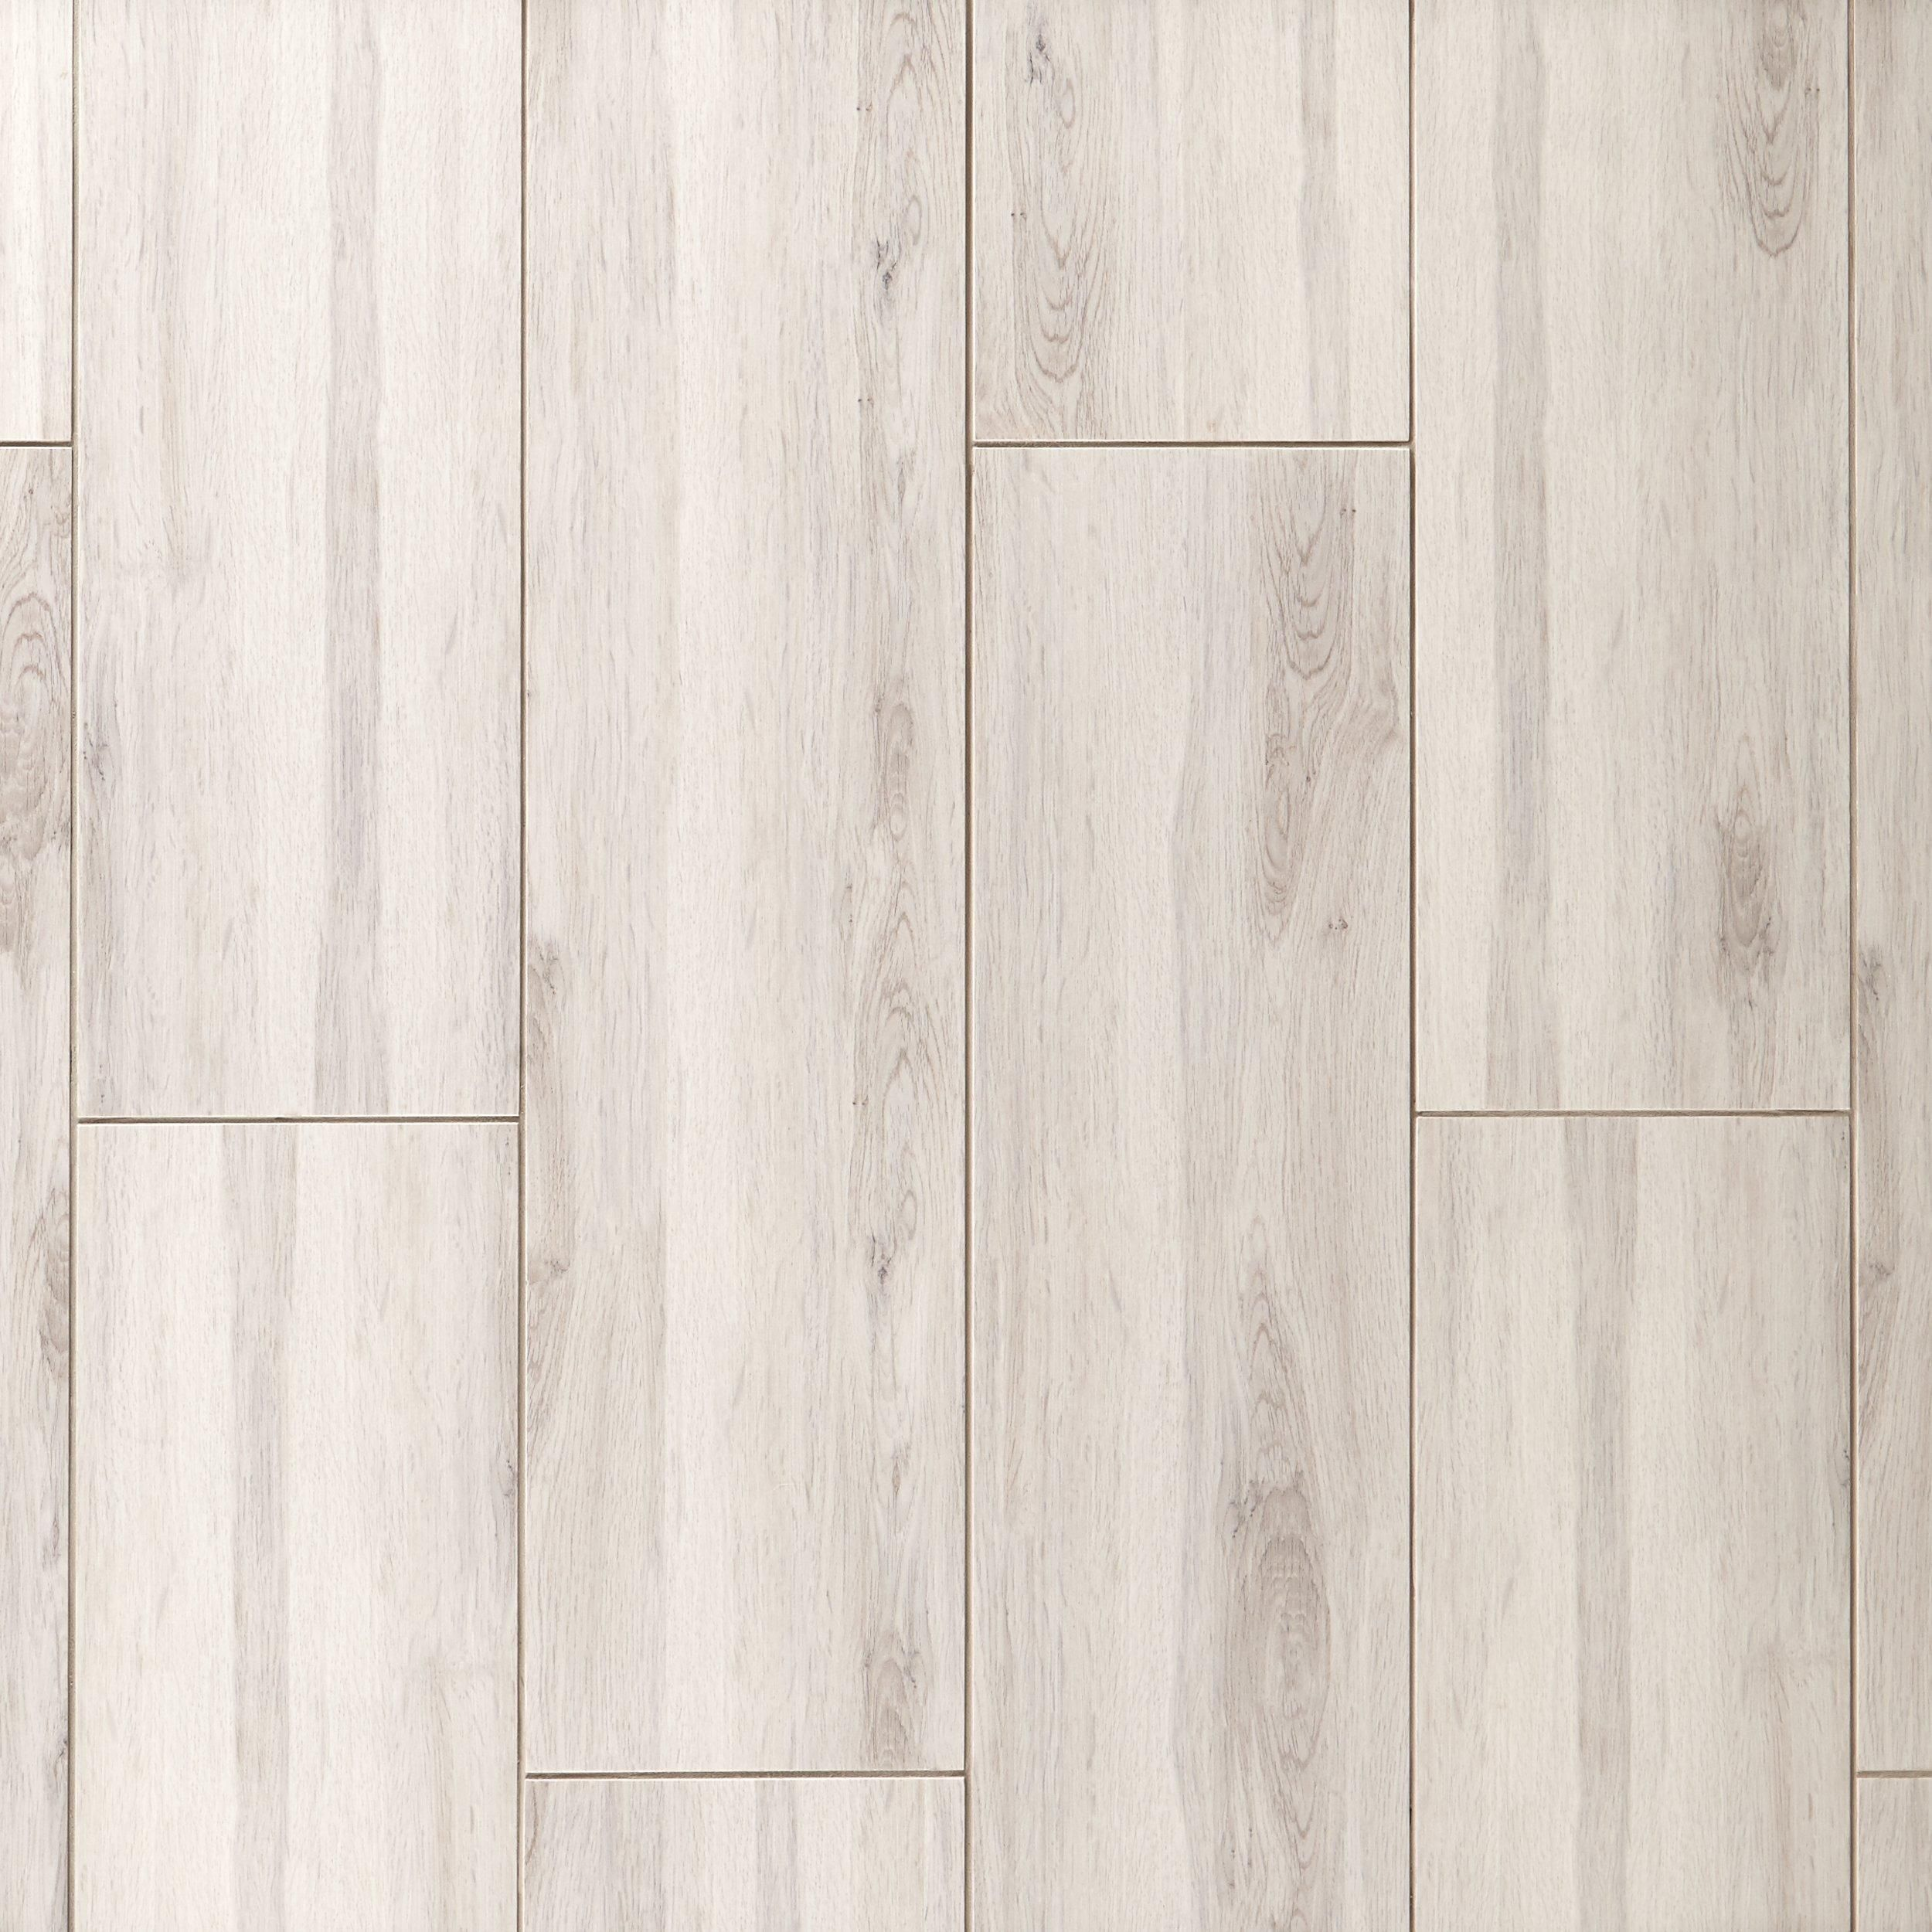 Hadley Gray Polished Wood Plank Ceramic Tile In 2019